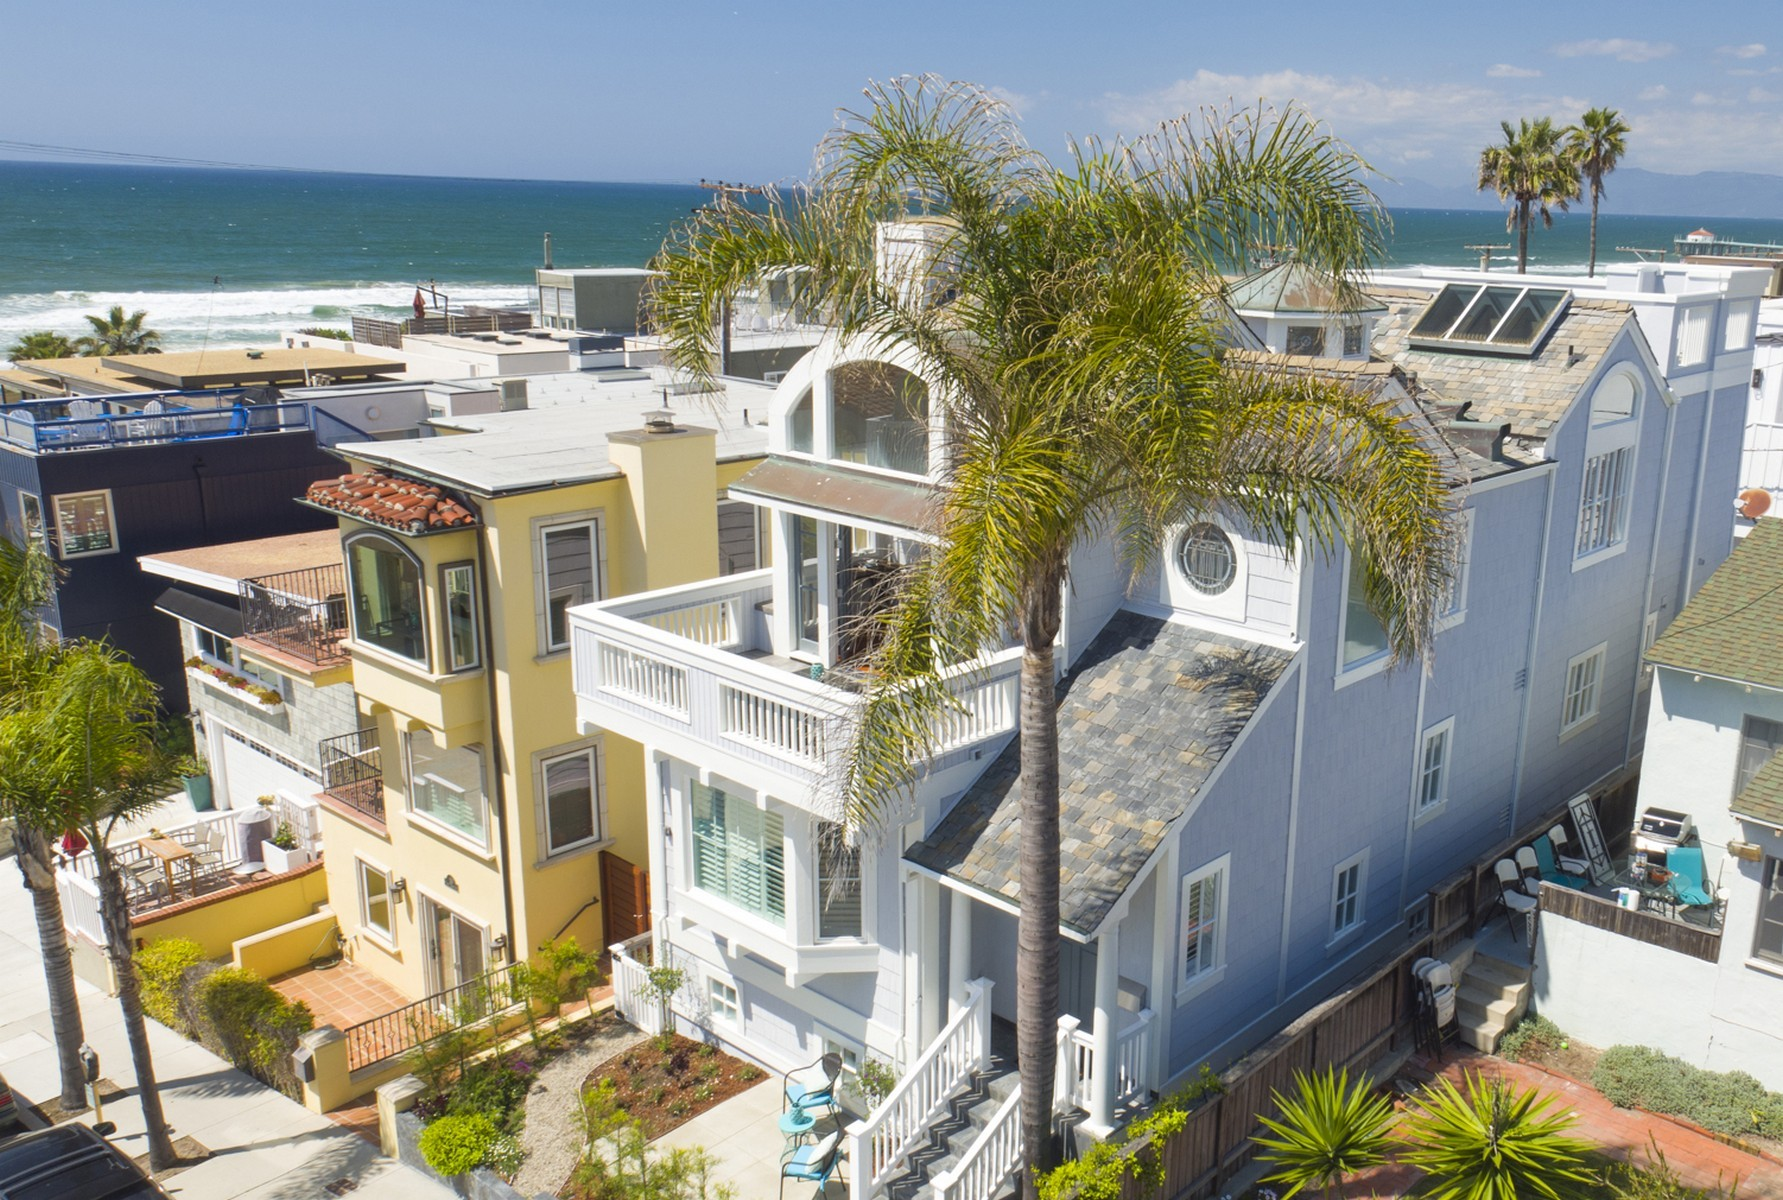 Single Family Home for Sale at 135 33rd Street Hermosa Beach, California, 90254 United States